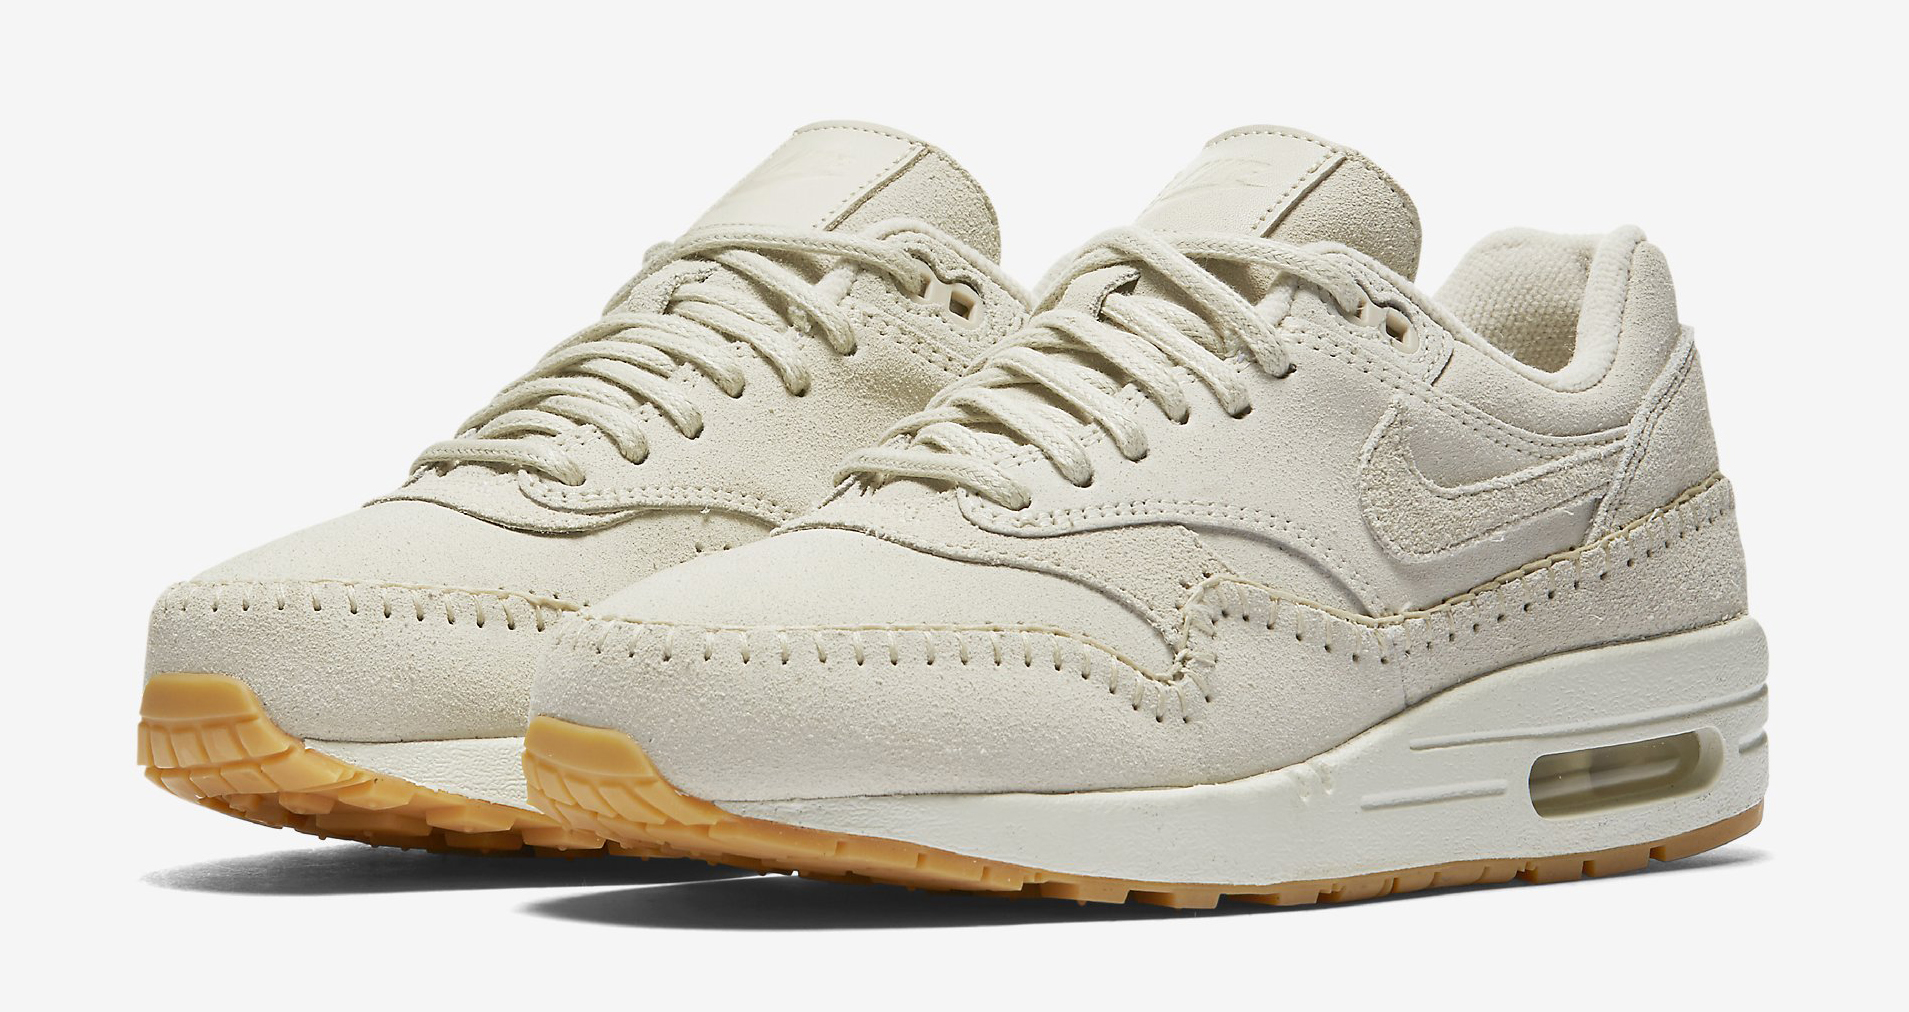 Nike Air Max 1 Sherpa Cream 454746-204